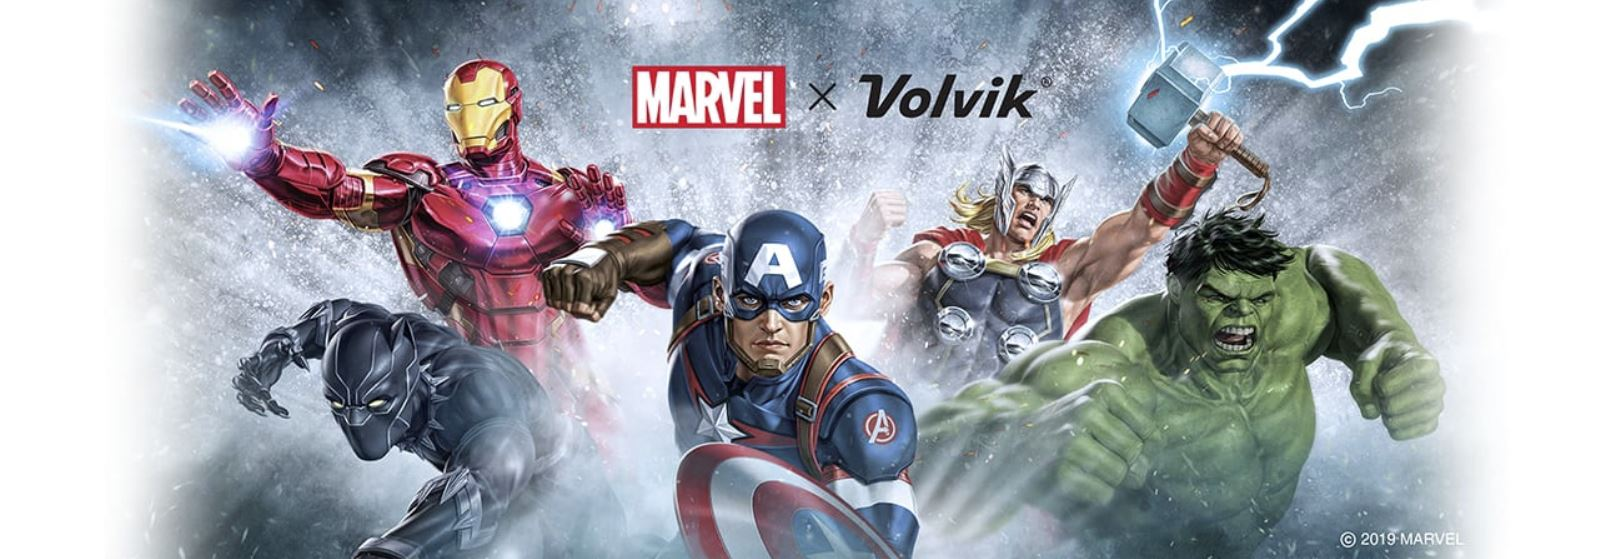 MARVEL bottom banner Volvik balls - 2020